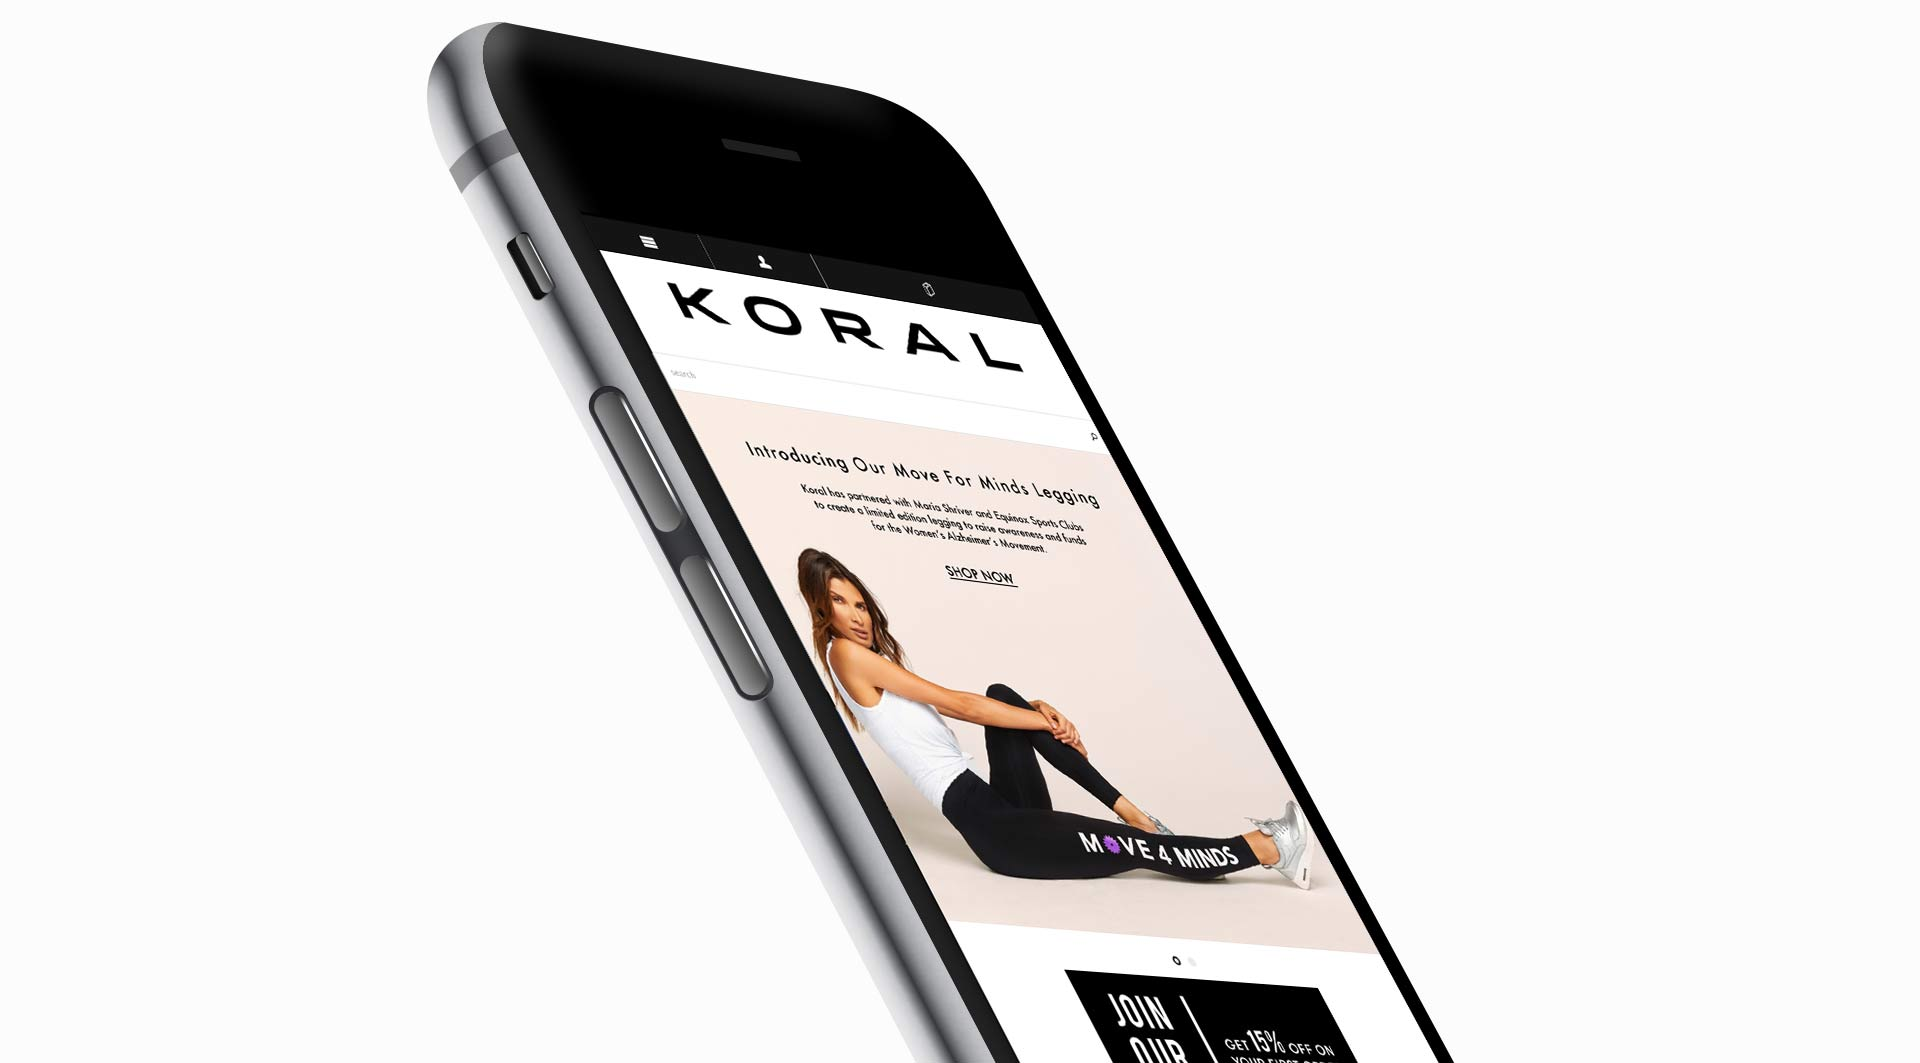 koral-main_devices_mobile